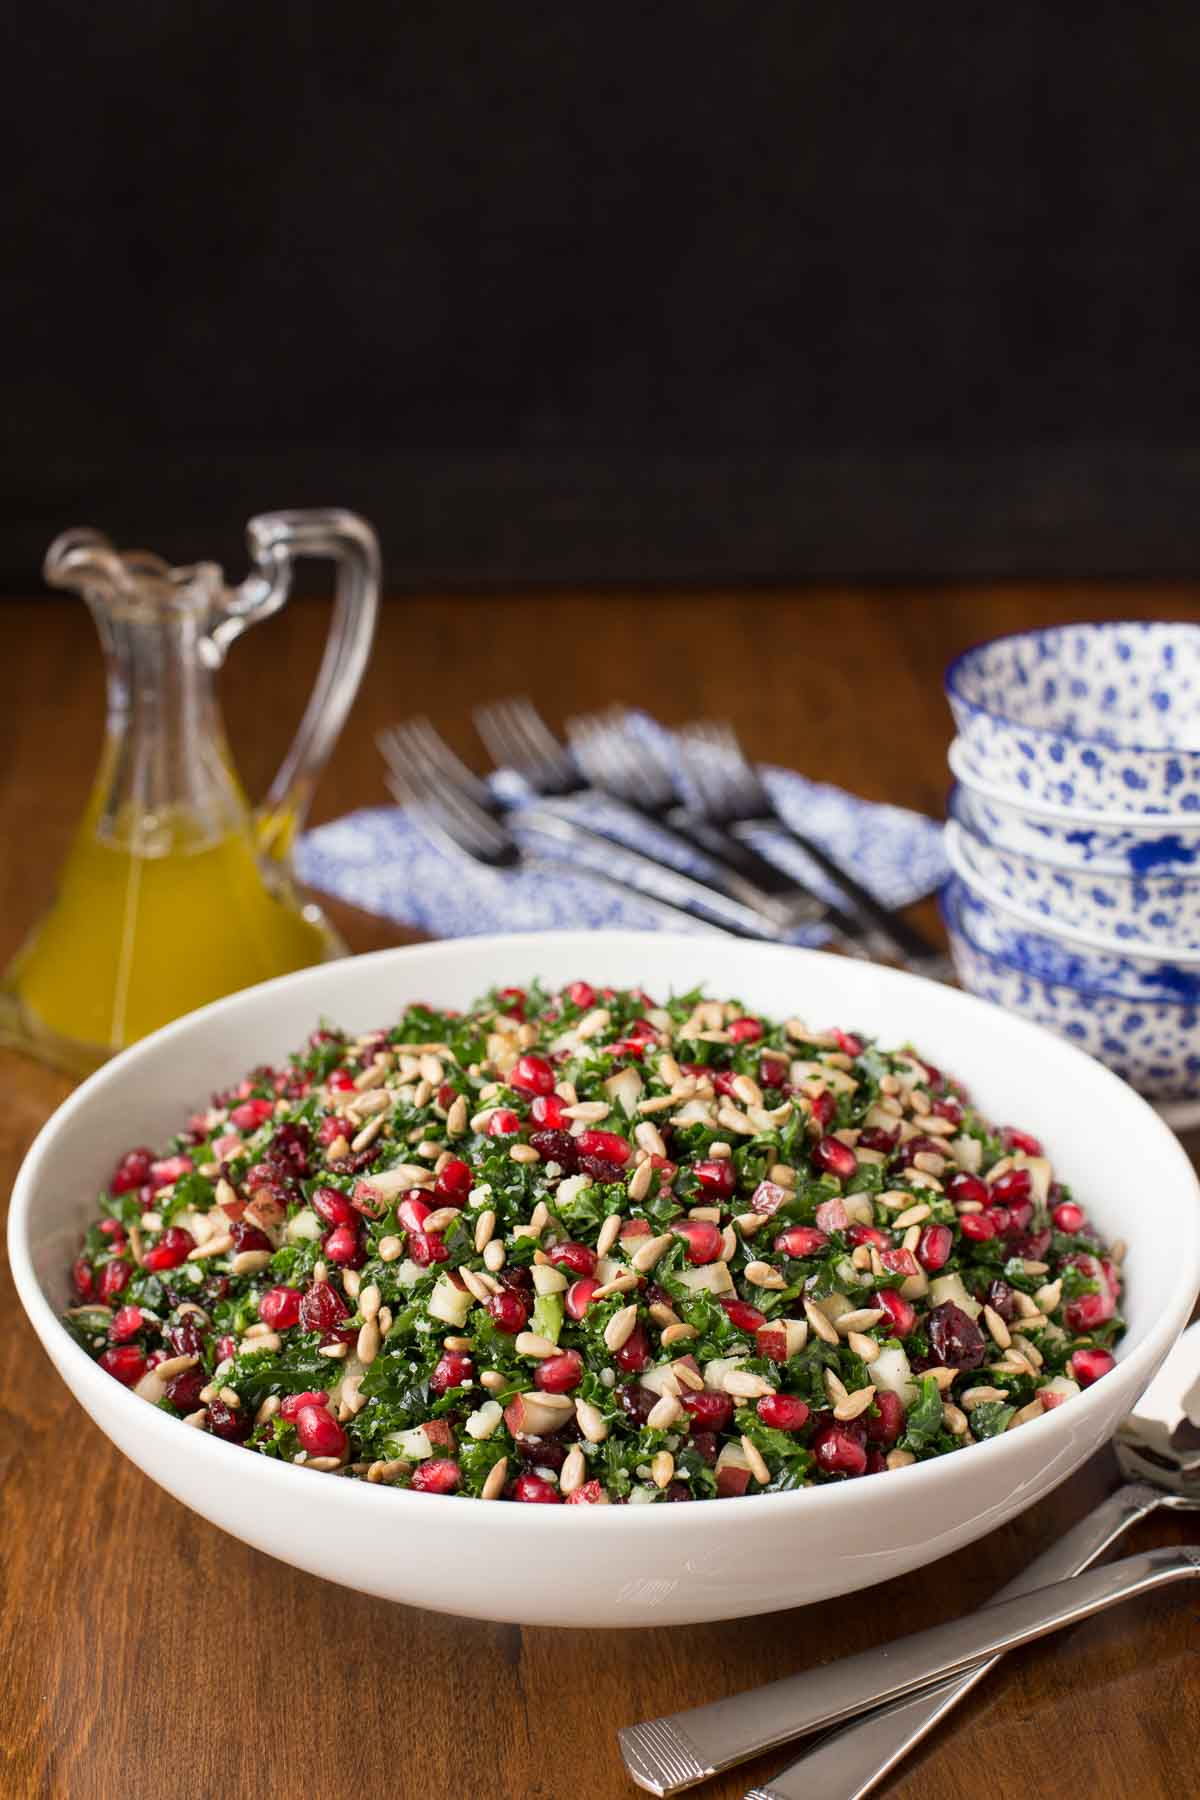 Vertical photo of a Pomegranate Pear Kale Salad in a white serving bowl on a wood table.